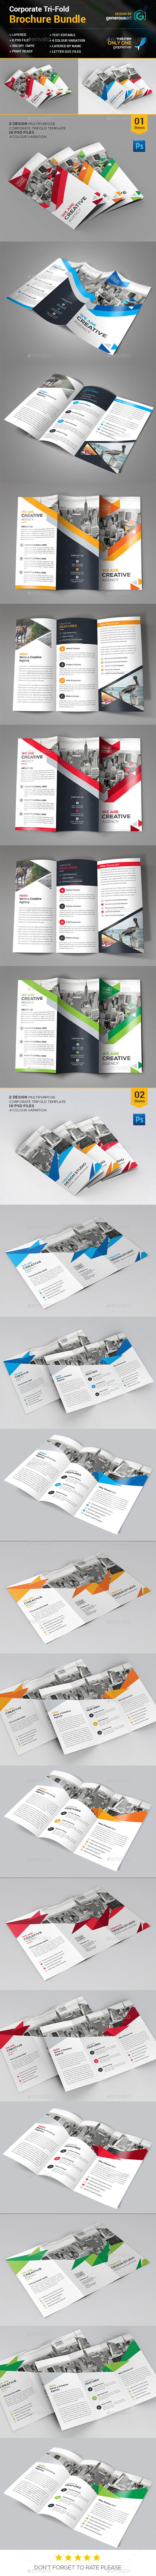 Trifold Brochure Bundle_1 - Corporate Brochures